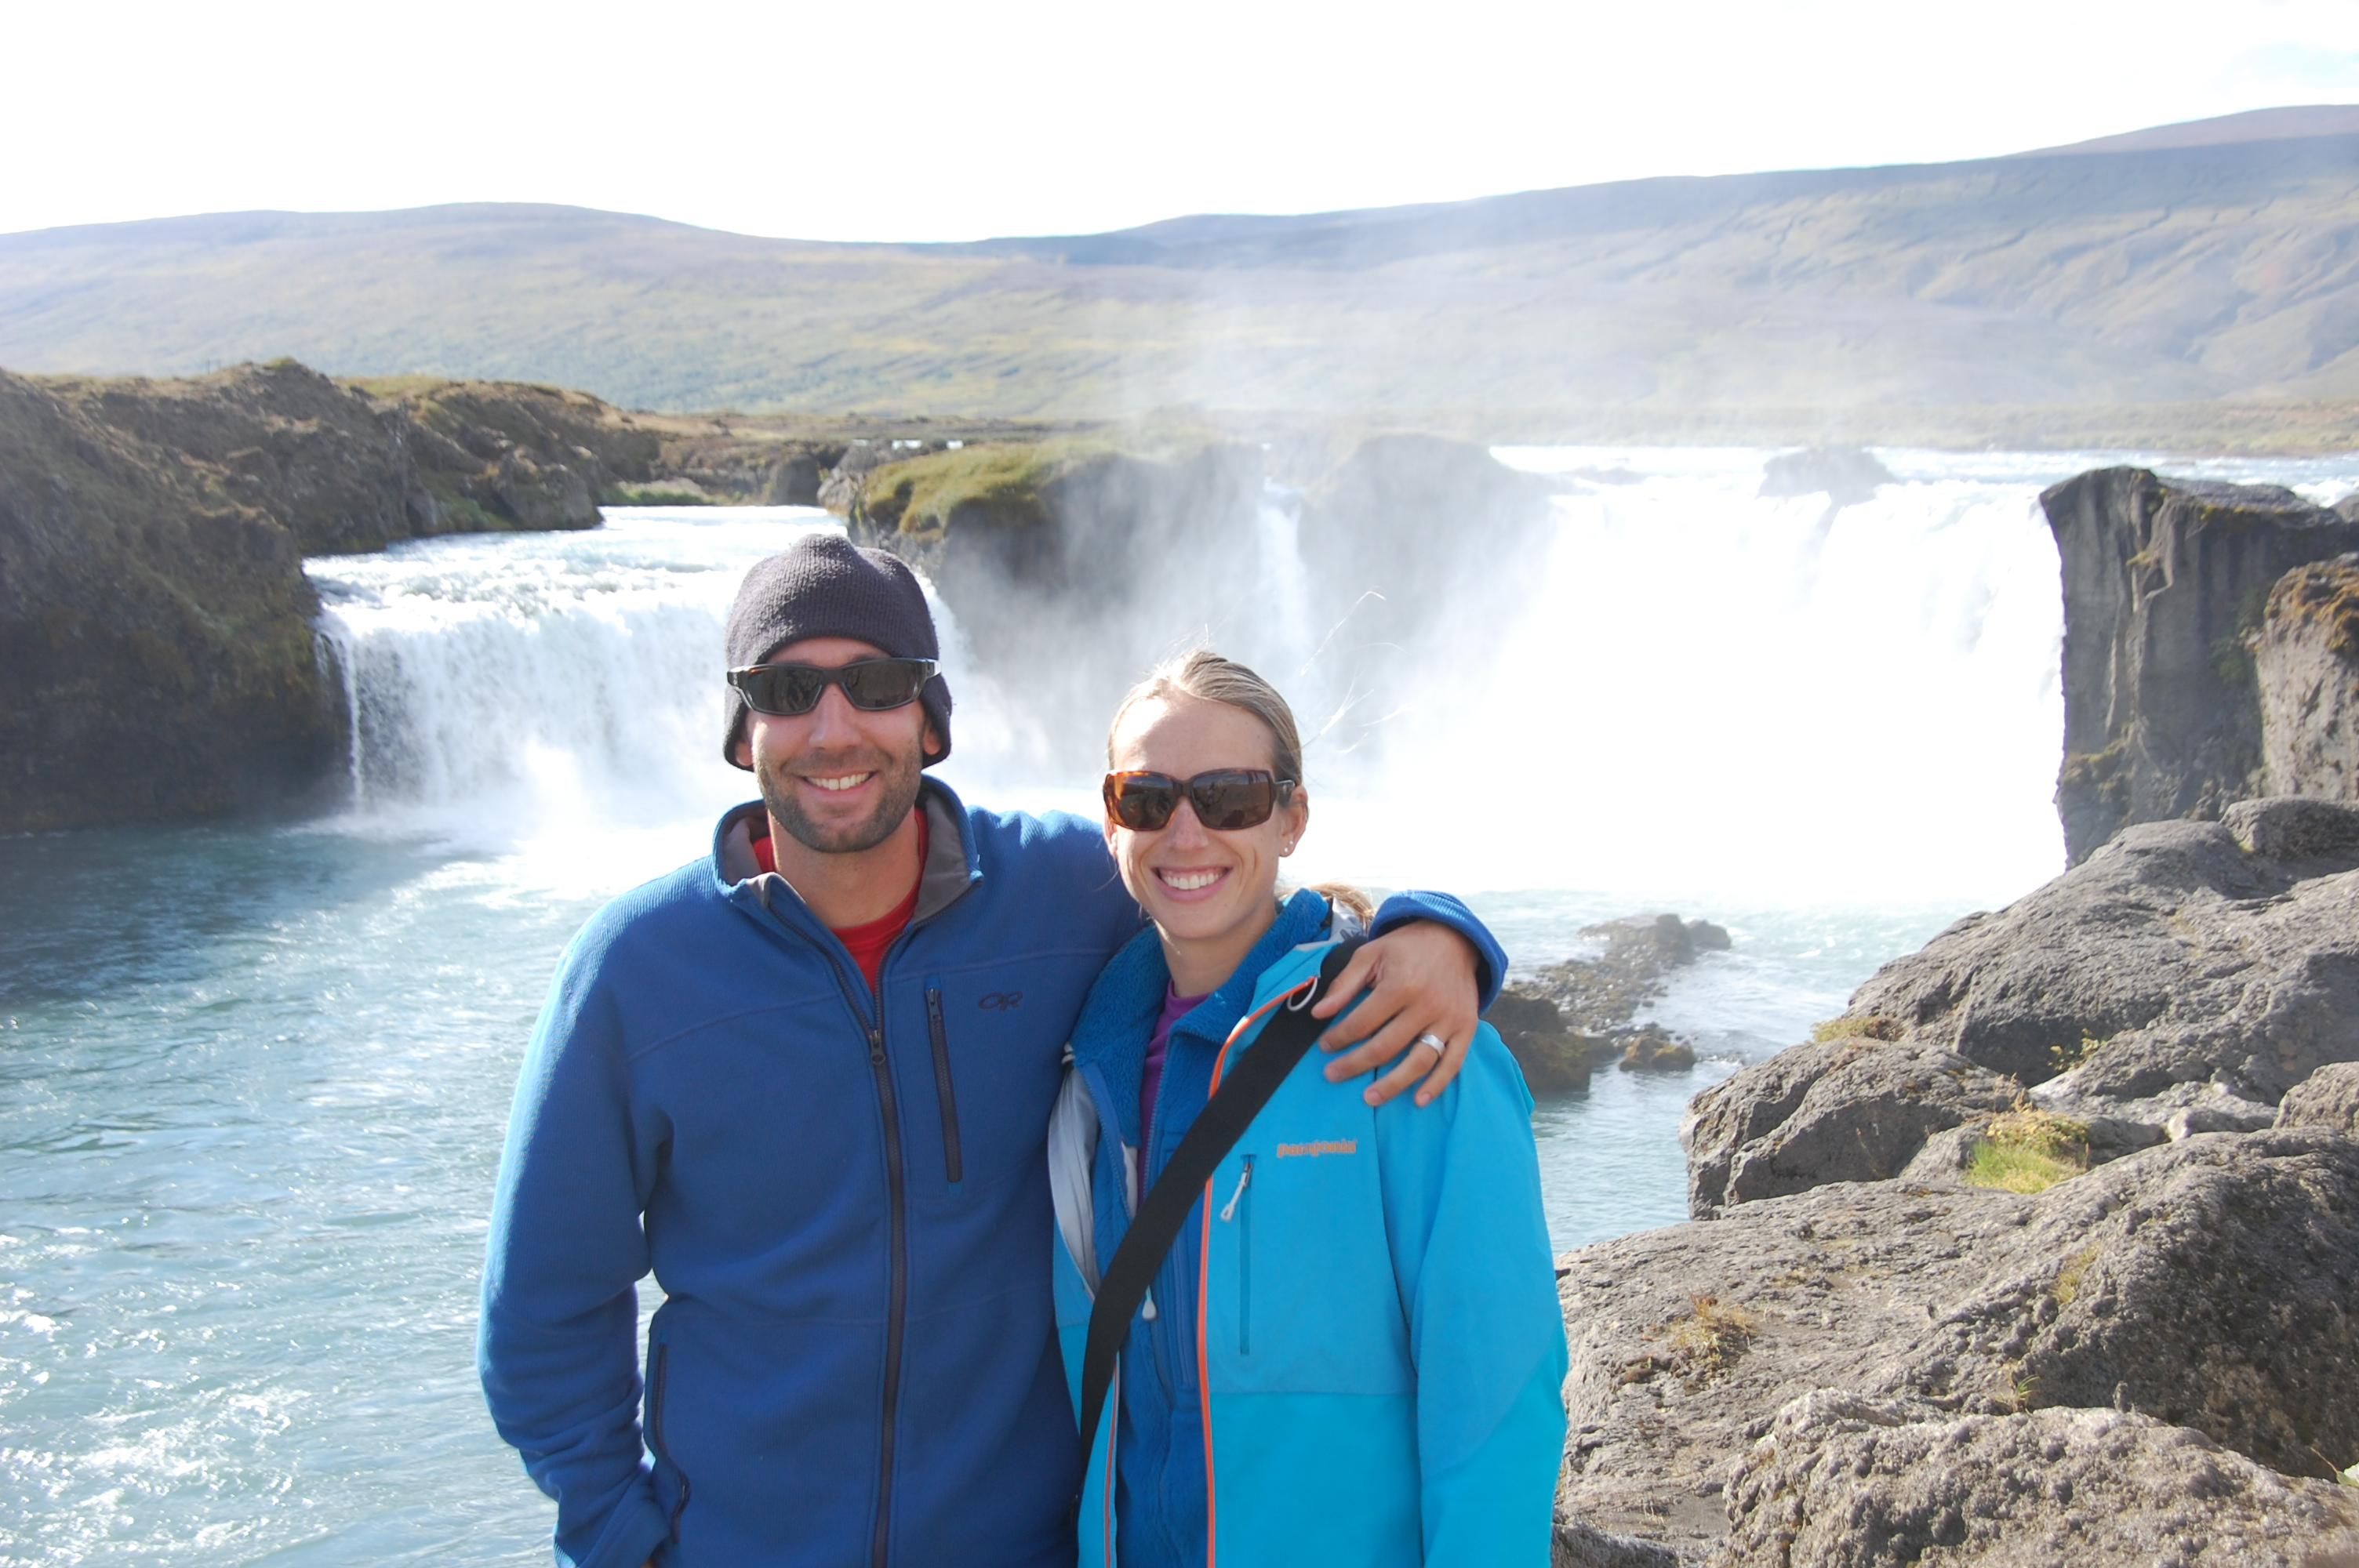 Another amazing waterfall along the way, Godafoss (Waterfall of the Gods)